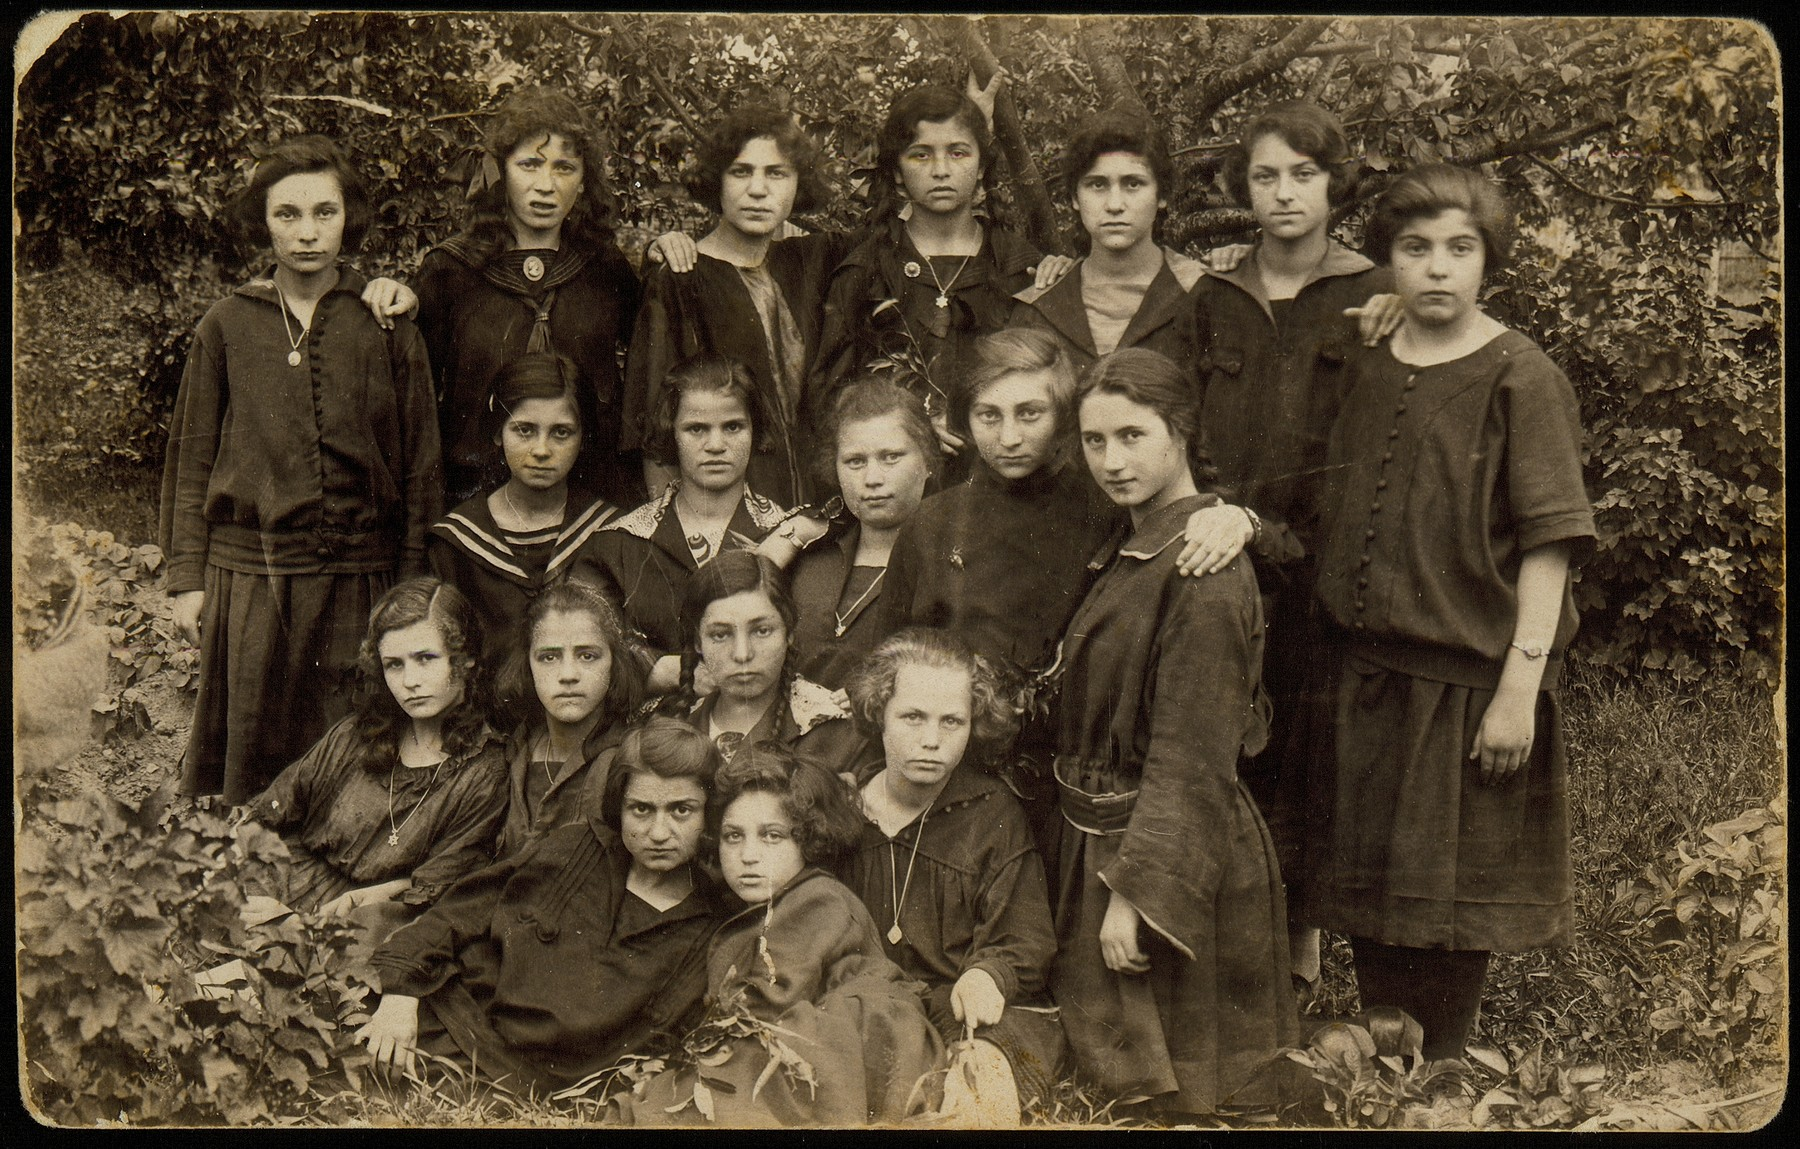 Group portrait of teenage girls beloning to a social group known as the 21 Club.   In 1921, twenty-one teenage girls, all Hebrew students established an apolitical friendship society and named it  Club 21.  Their younger sisters decided to establish a similar club, simply named Our Circle.  Many of these young women emigrated or moved to larger towns during the 1930s.   Among the Club 21 members: Mattle Sonenson (front right) and her best friend Geneshe Kaganowicz; Zipporah Katz (third row, second from right);  Leah Koppelman (top row, fourth from right).